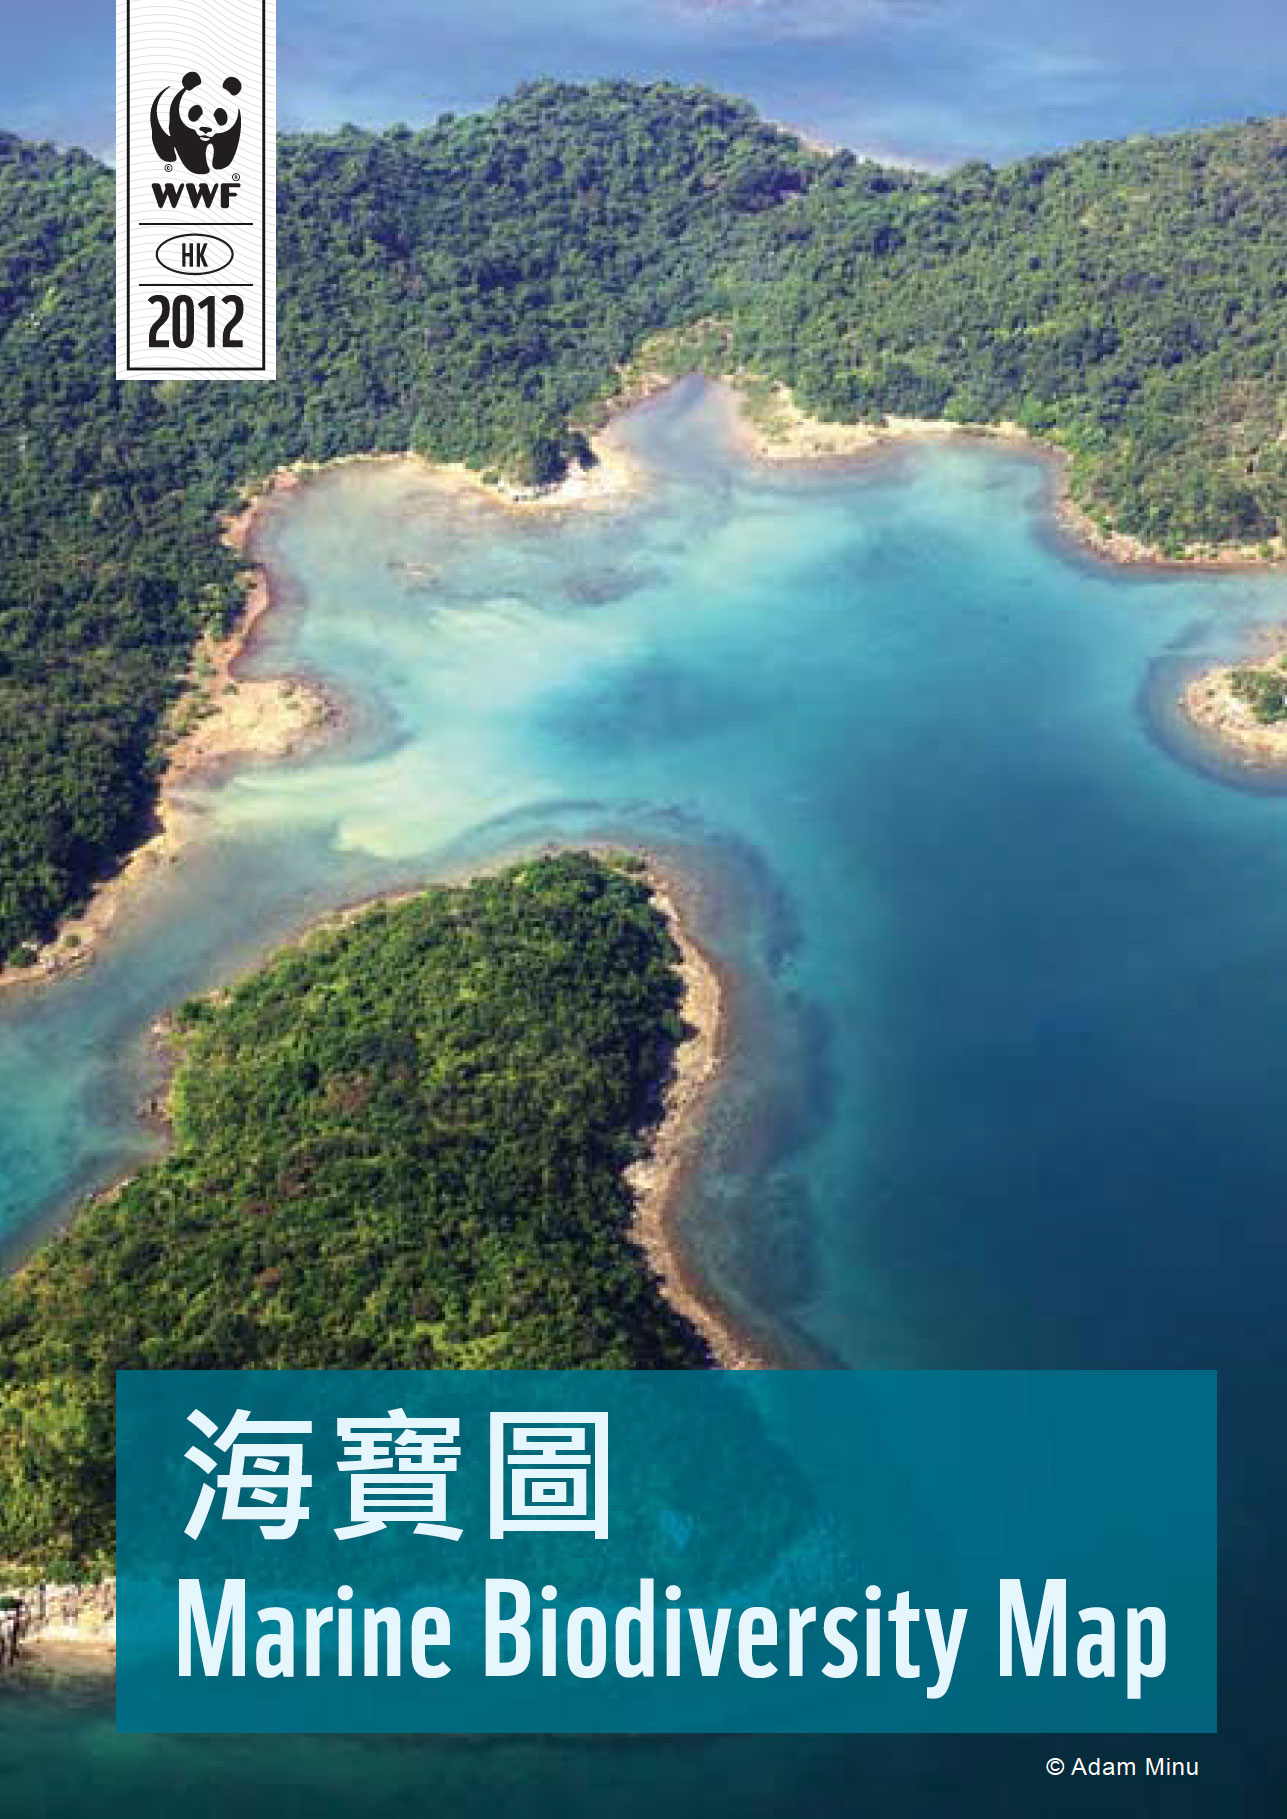 WWF Launches Hong Kongs First Marine Biodiversity Map Reveals